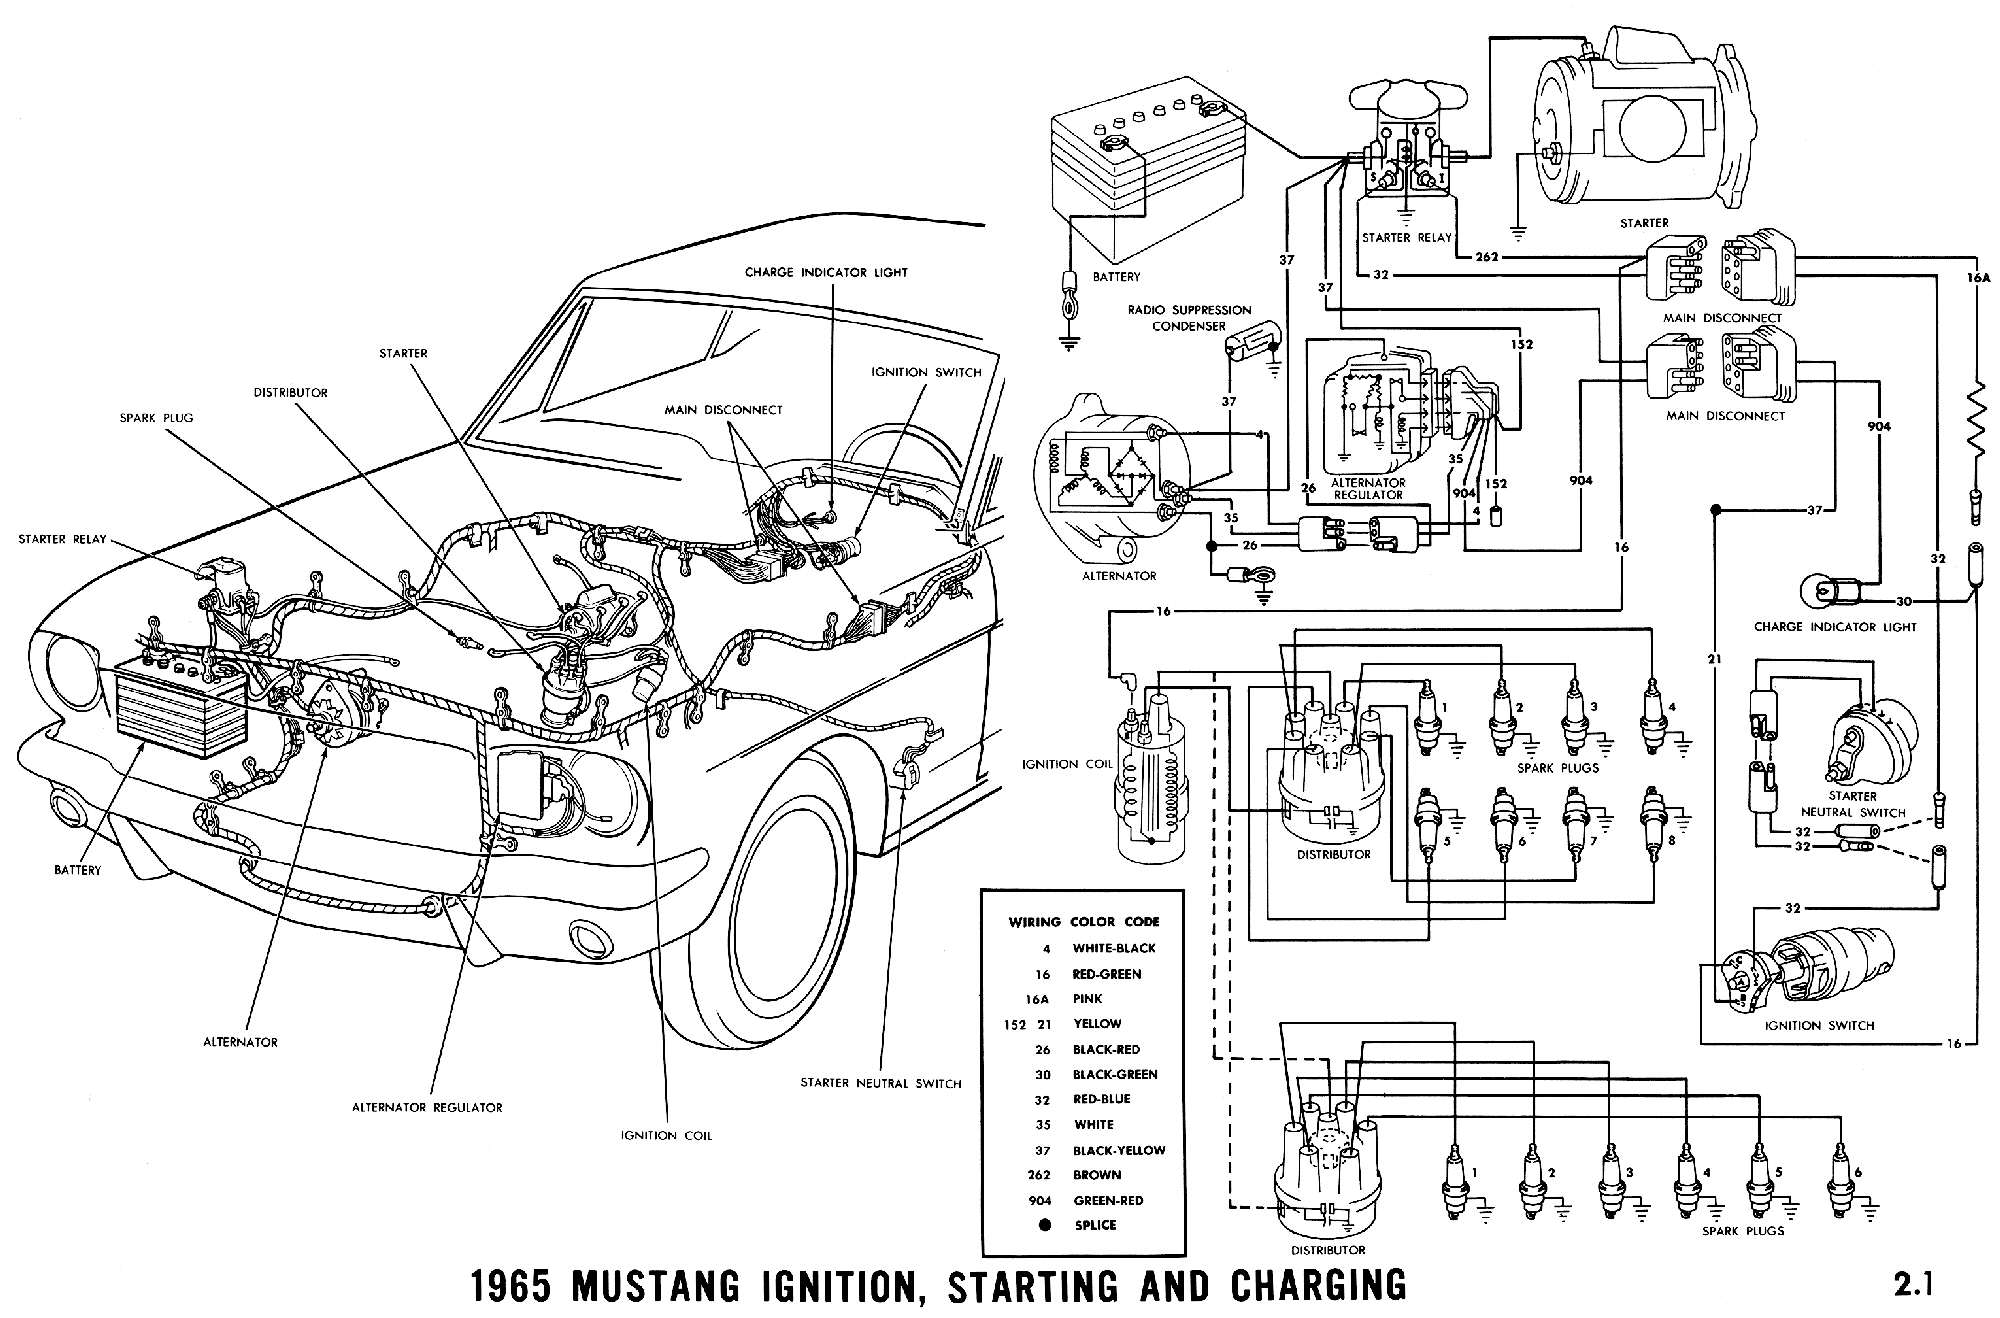 1965 Mustang Engine Diagram - Tppk.eloi-oil.uk •